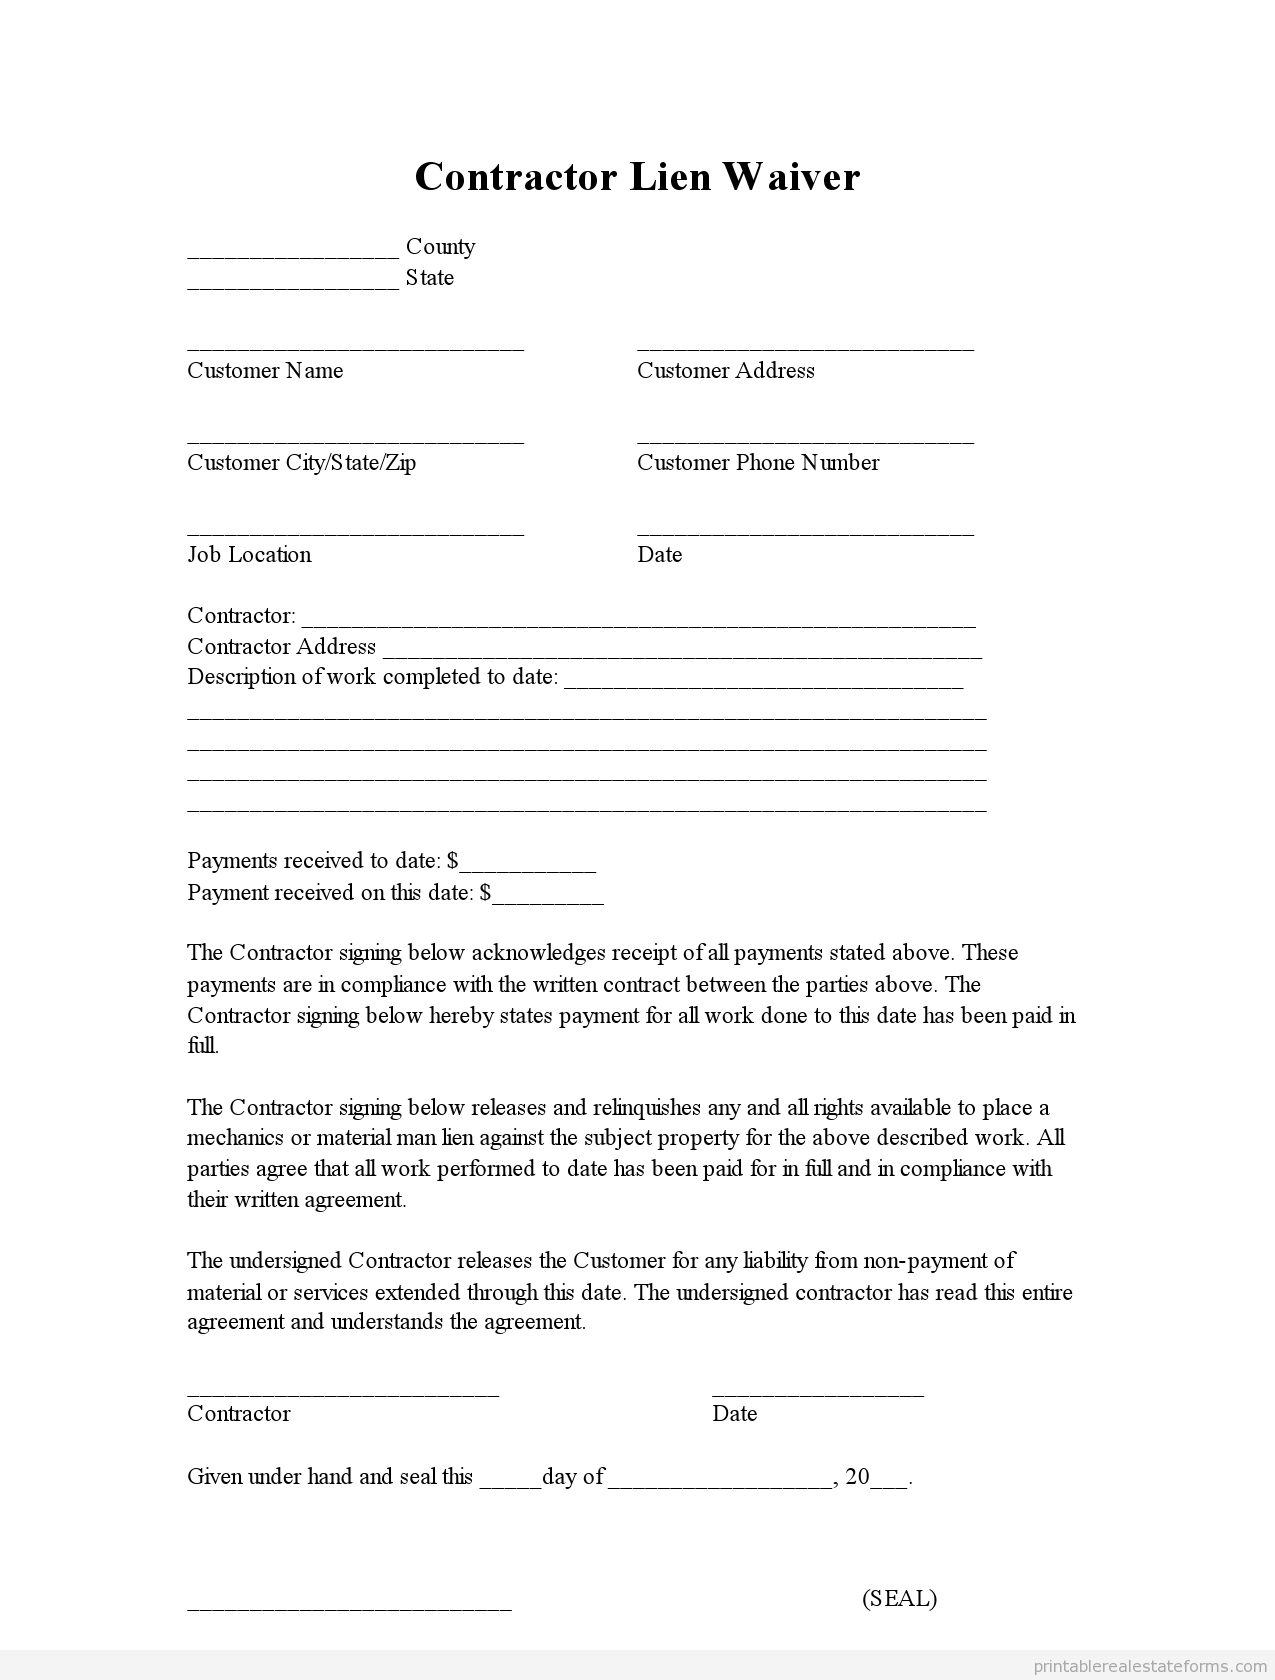 sample printable contractor lien waiver form printable real estate